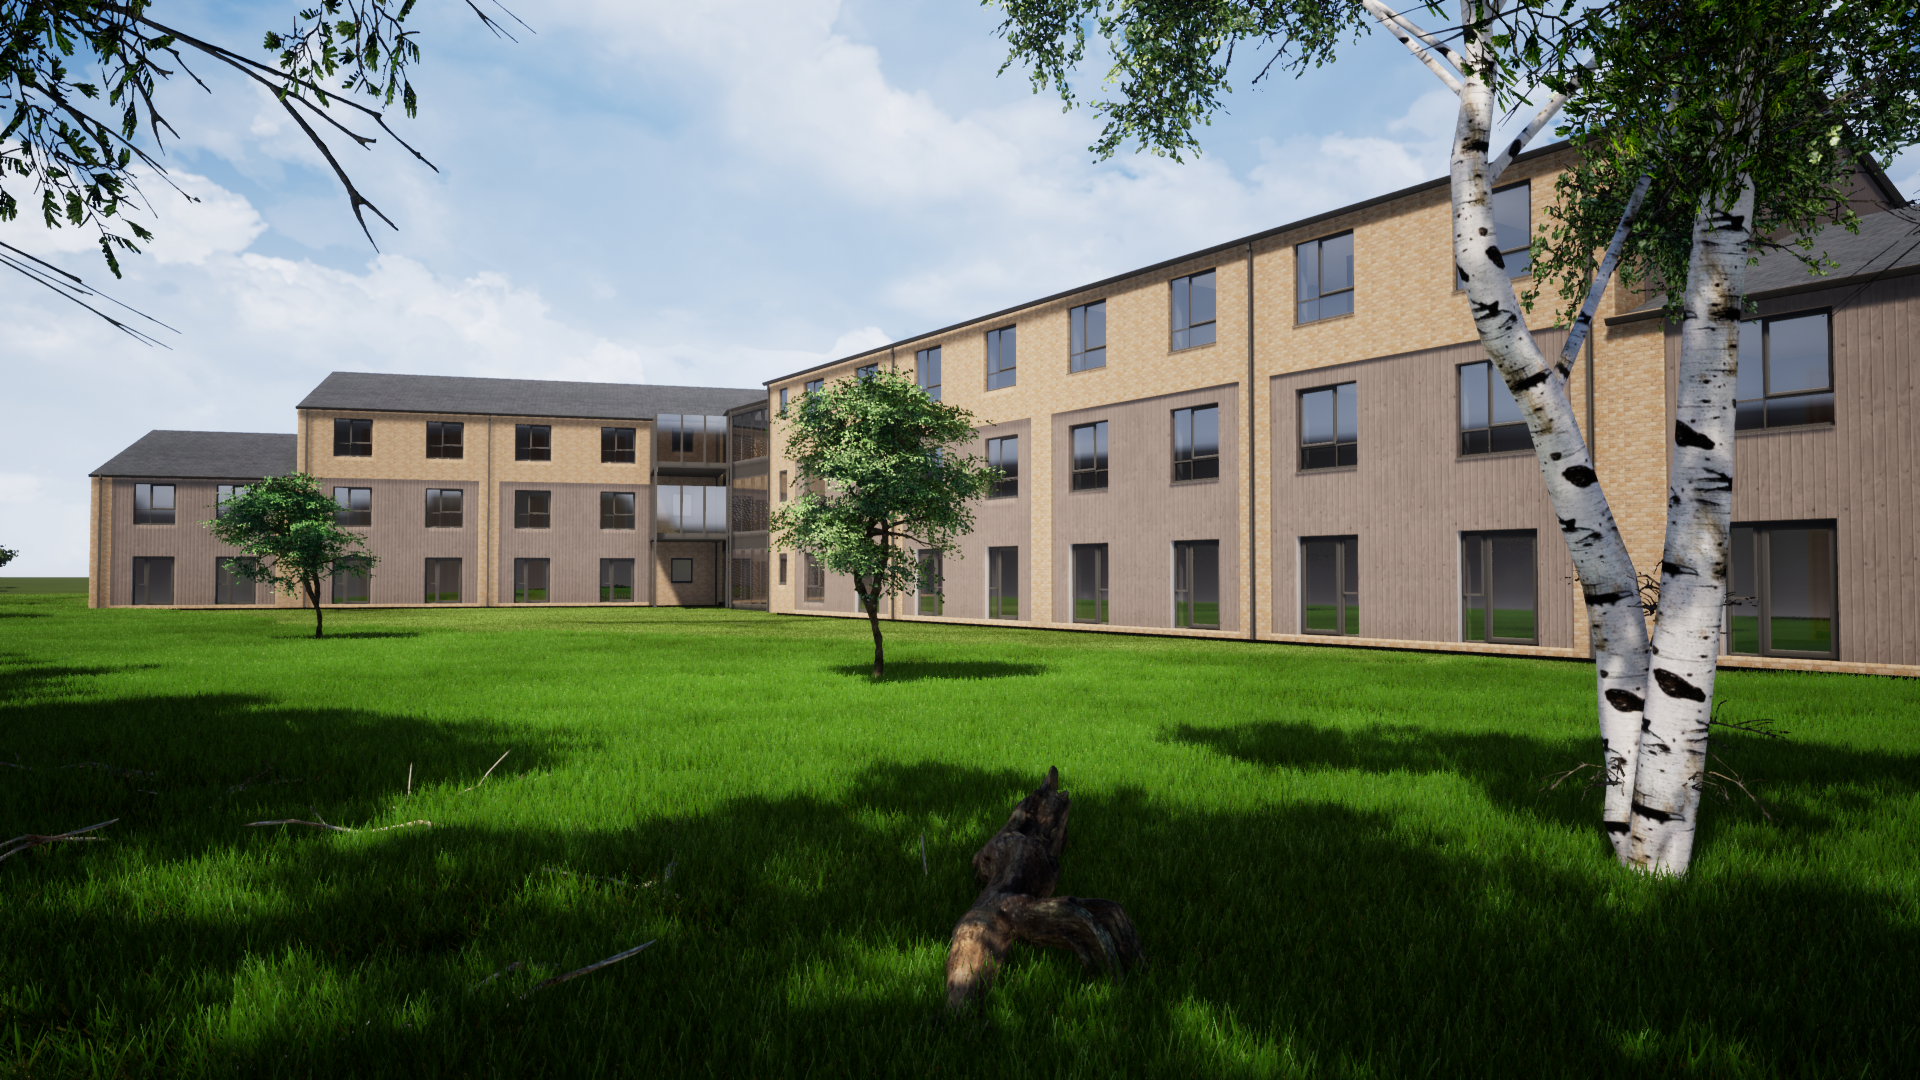 MCGOFF GROUP REVEALS PLANS FOR NEW DEVELOPMENT IN ADEL